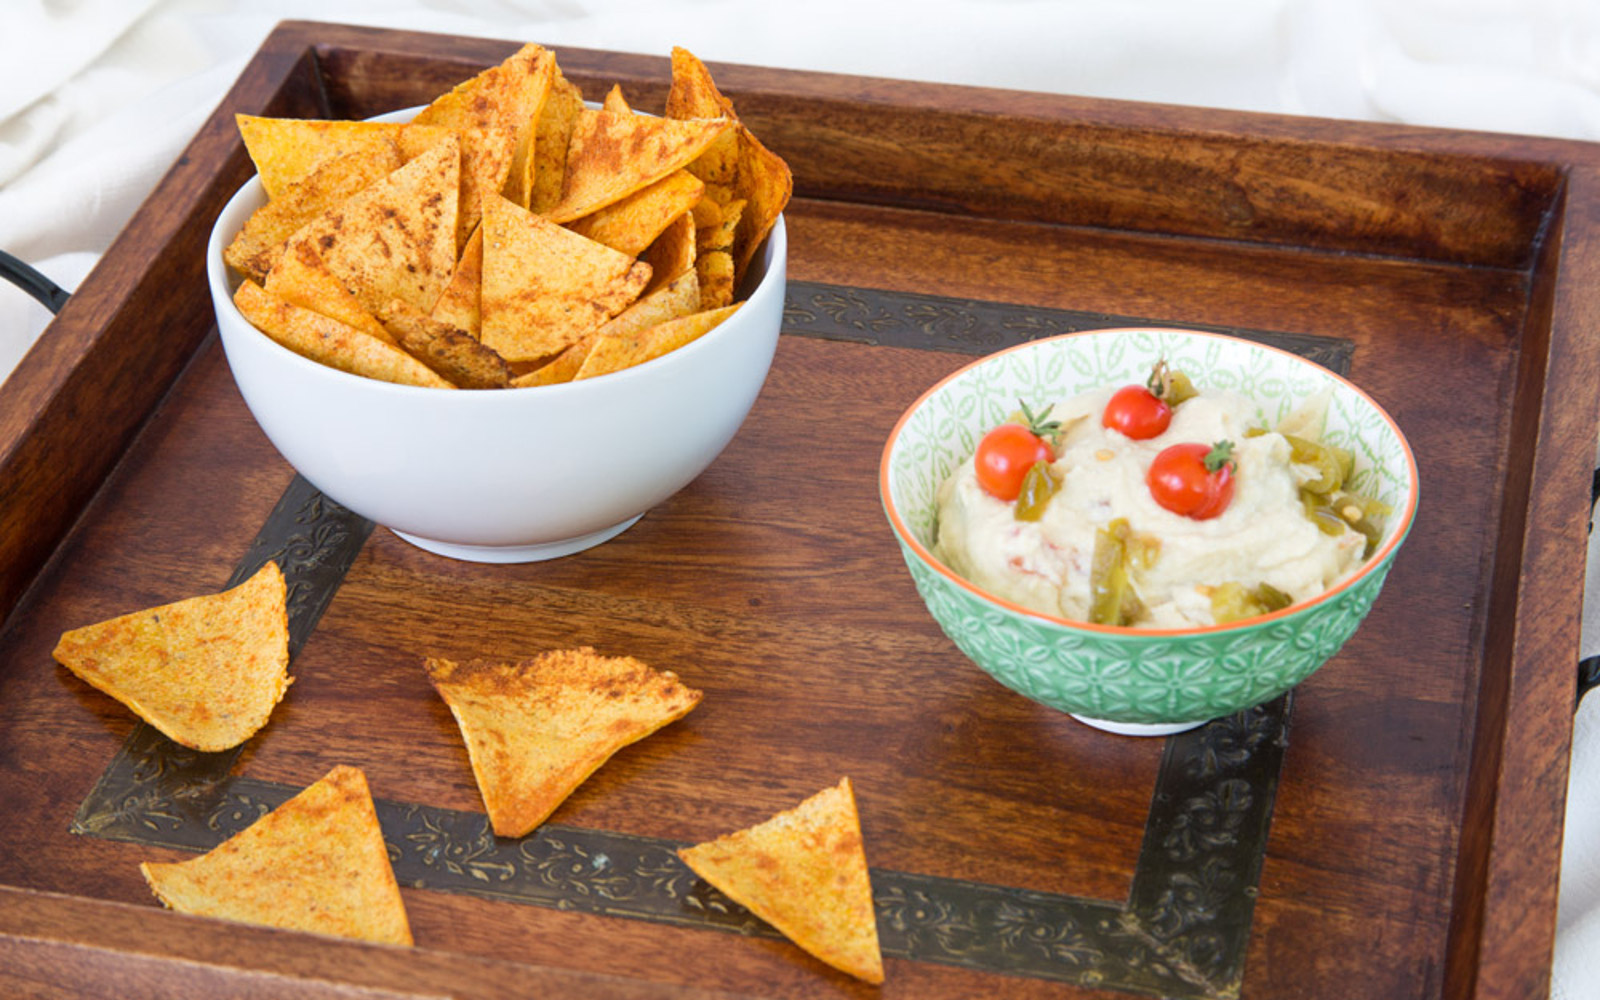 Vegan Gluten-Free Oil-Free Chili Lime Spiked Corn Chips in a dipping sauce